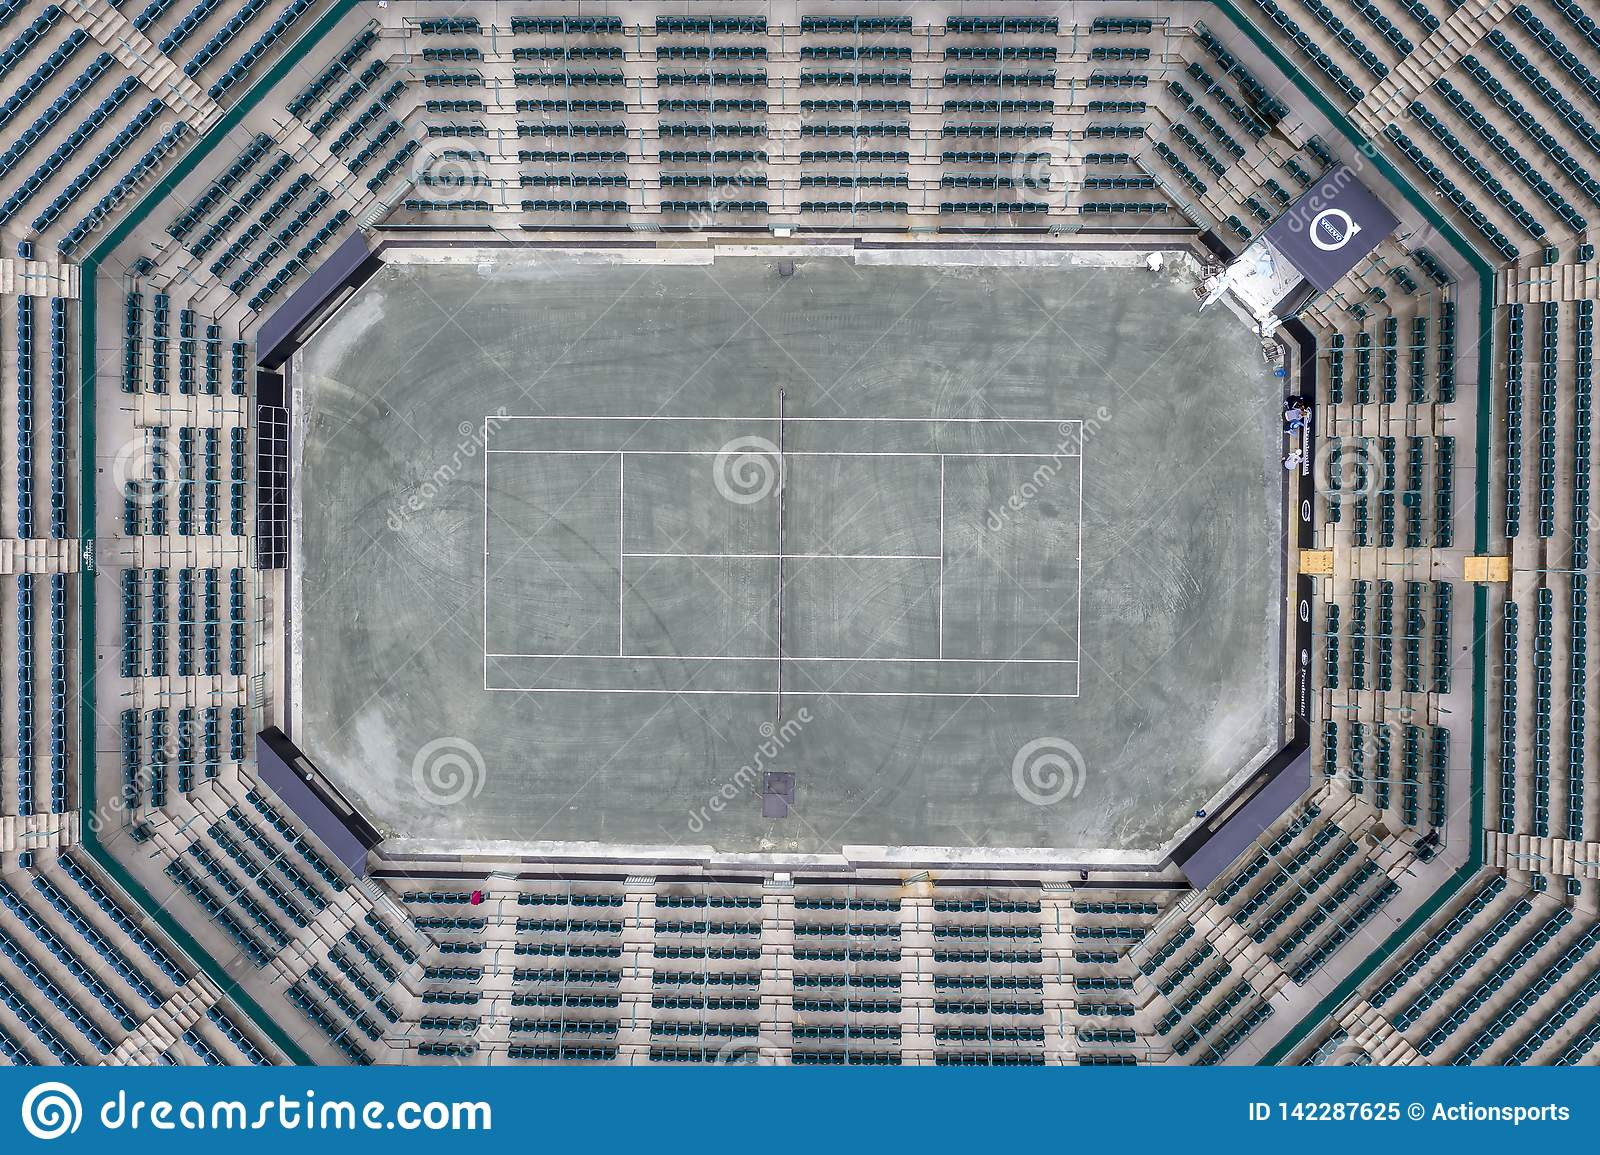 WTA: March 16 Aerial Views Of The Volvo Car Open Main Stadium